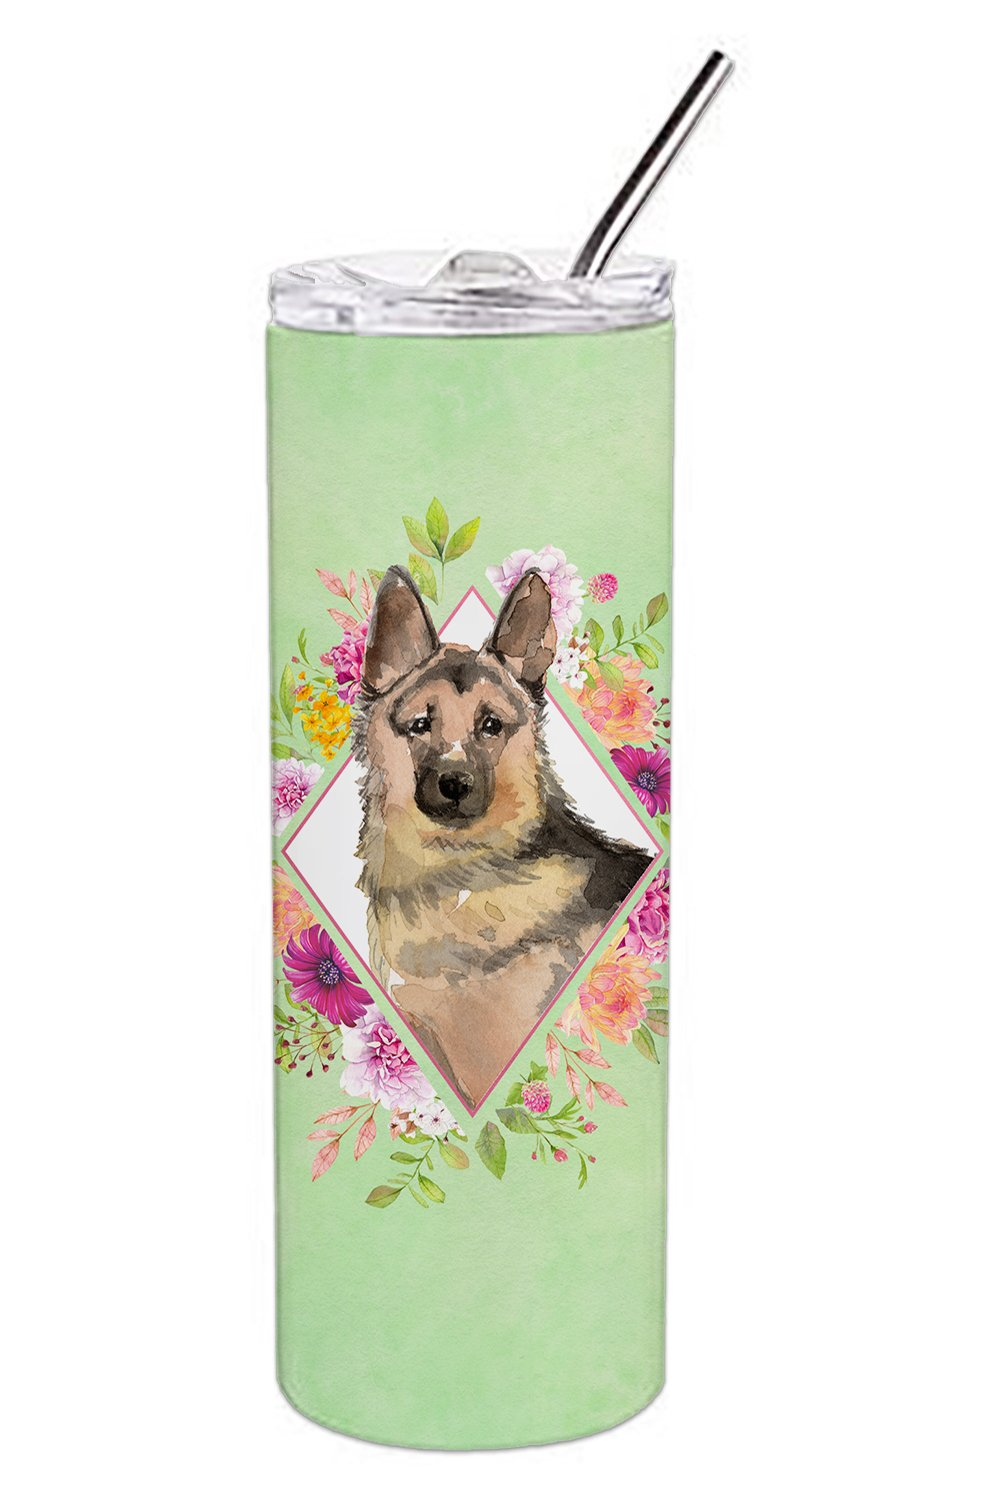 German Shepherd Green Flowers Double Walled Stainless Steel 20 oz Skinny Tumbler CK4397TBL20 by Caroline's Treasures